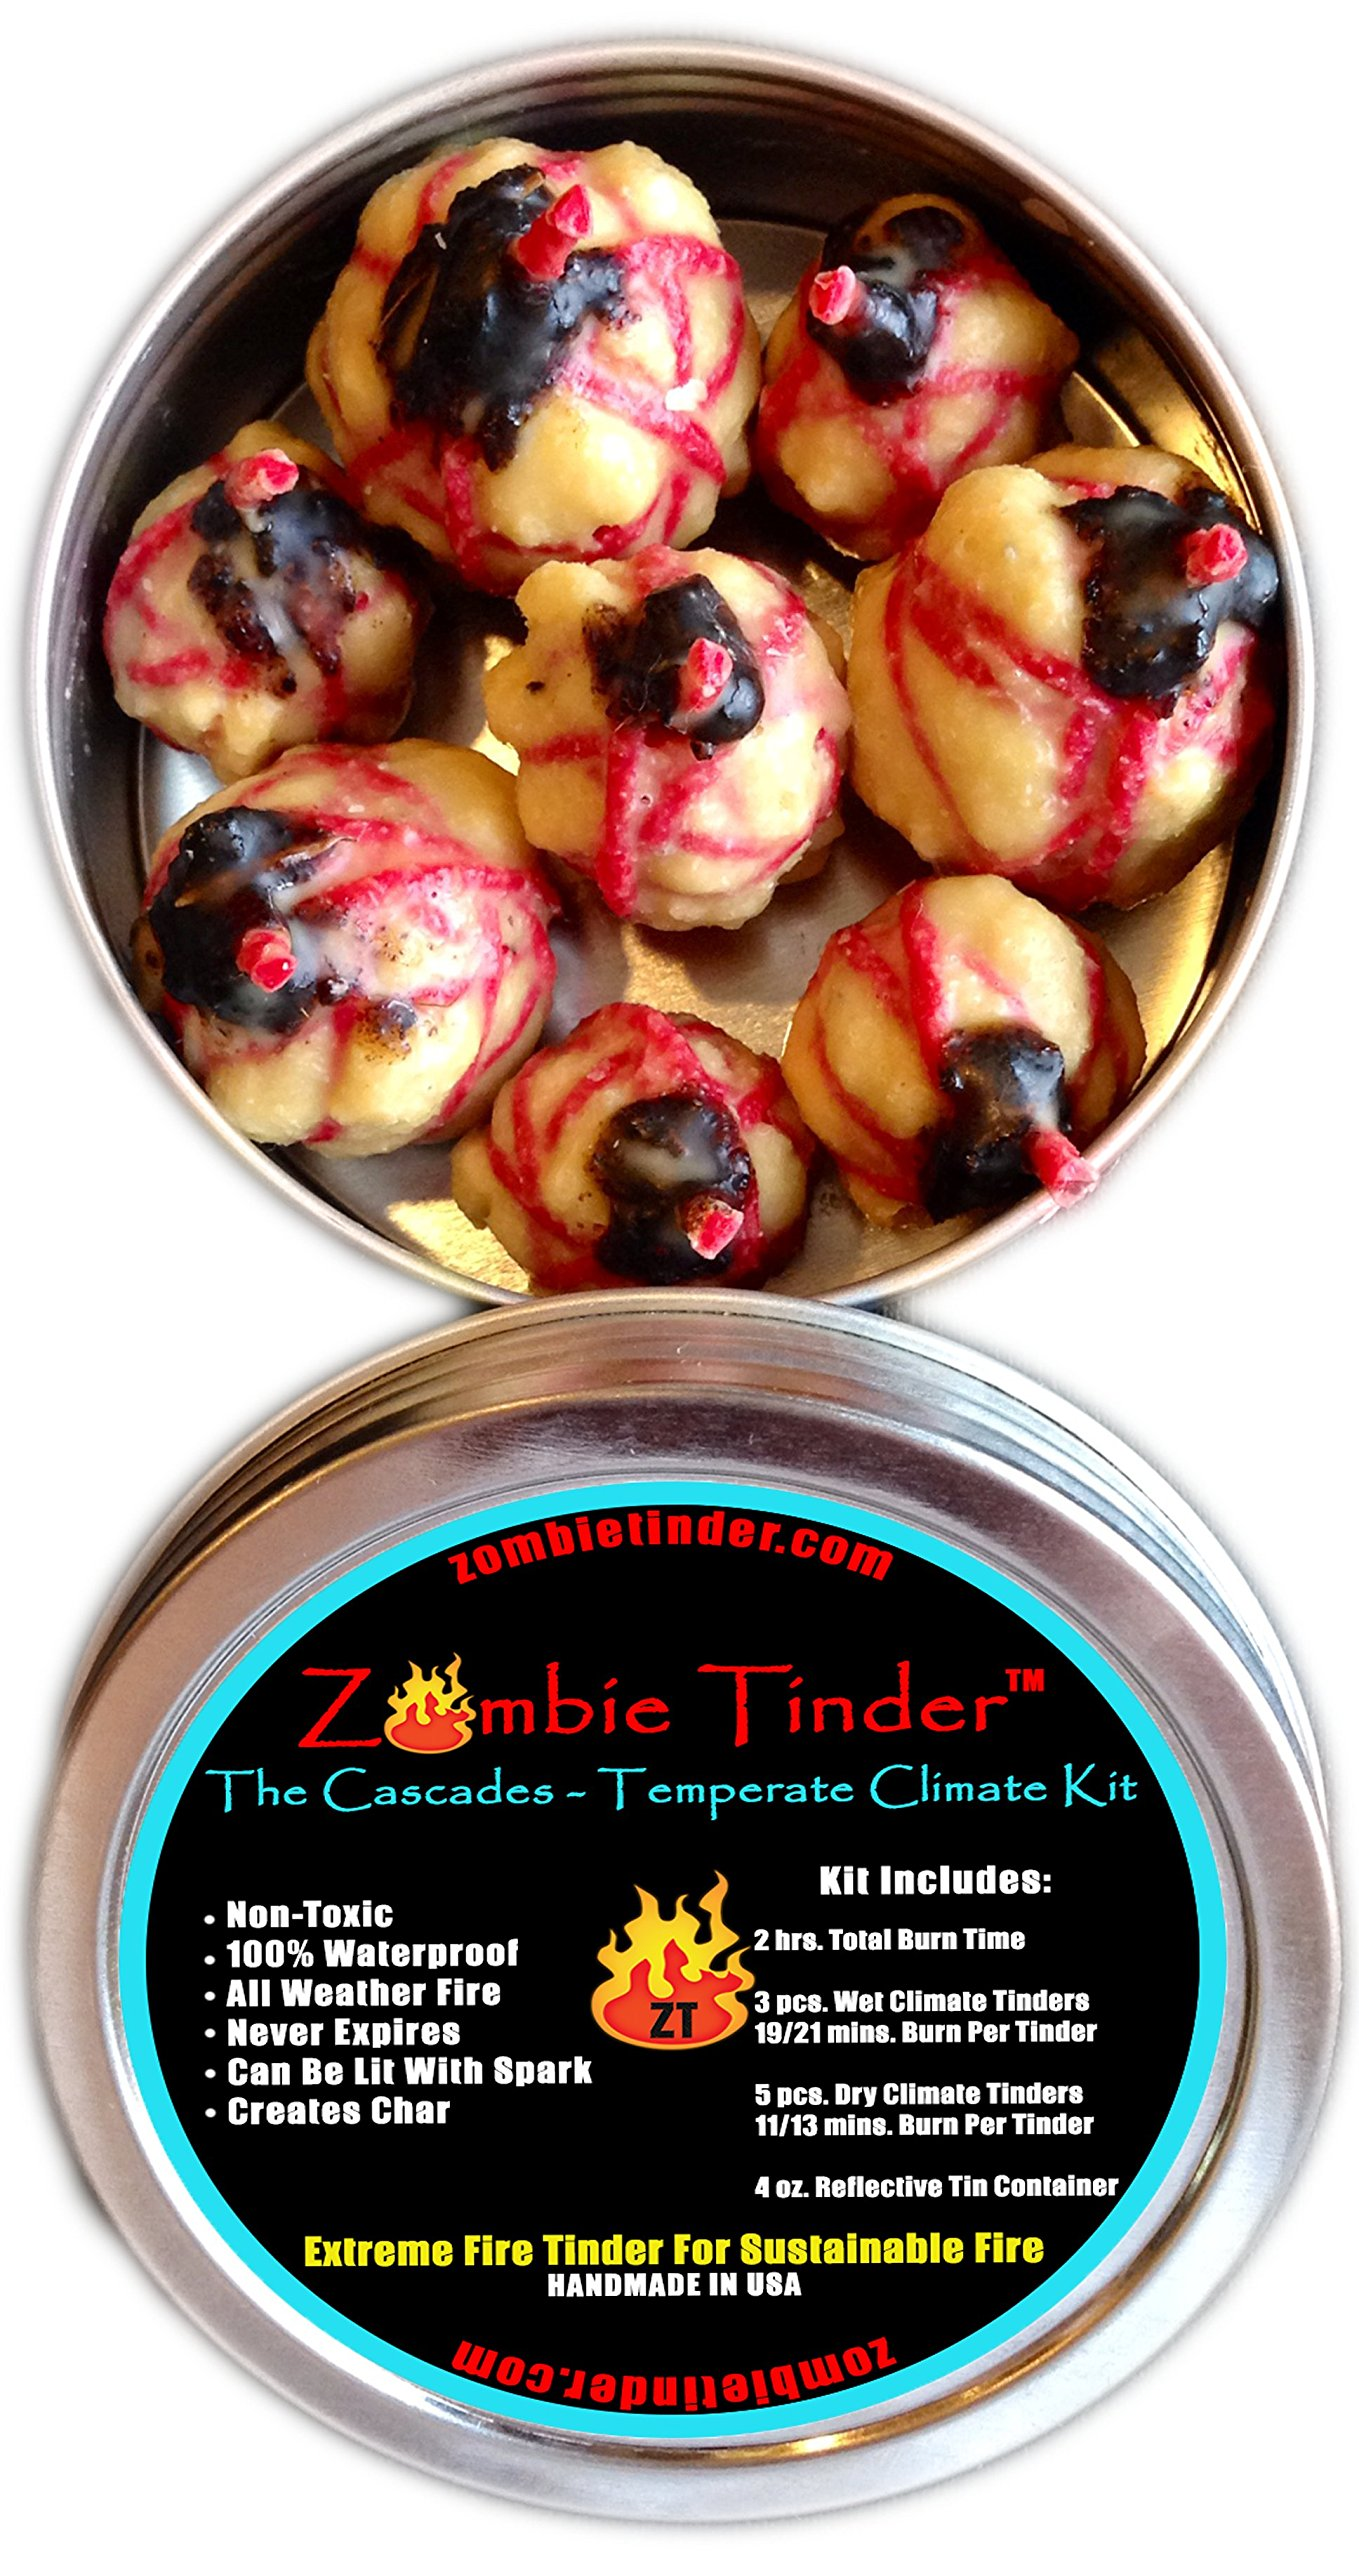 Zombie Tinder The Cascades: Temperate Climate Kit - Extreme Fire Starter & Tinder - Over 2 Hours of Total Burn Time - Easy Light Wick - Spark Light